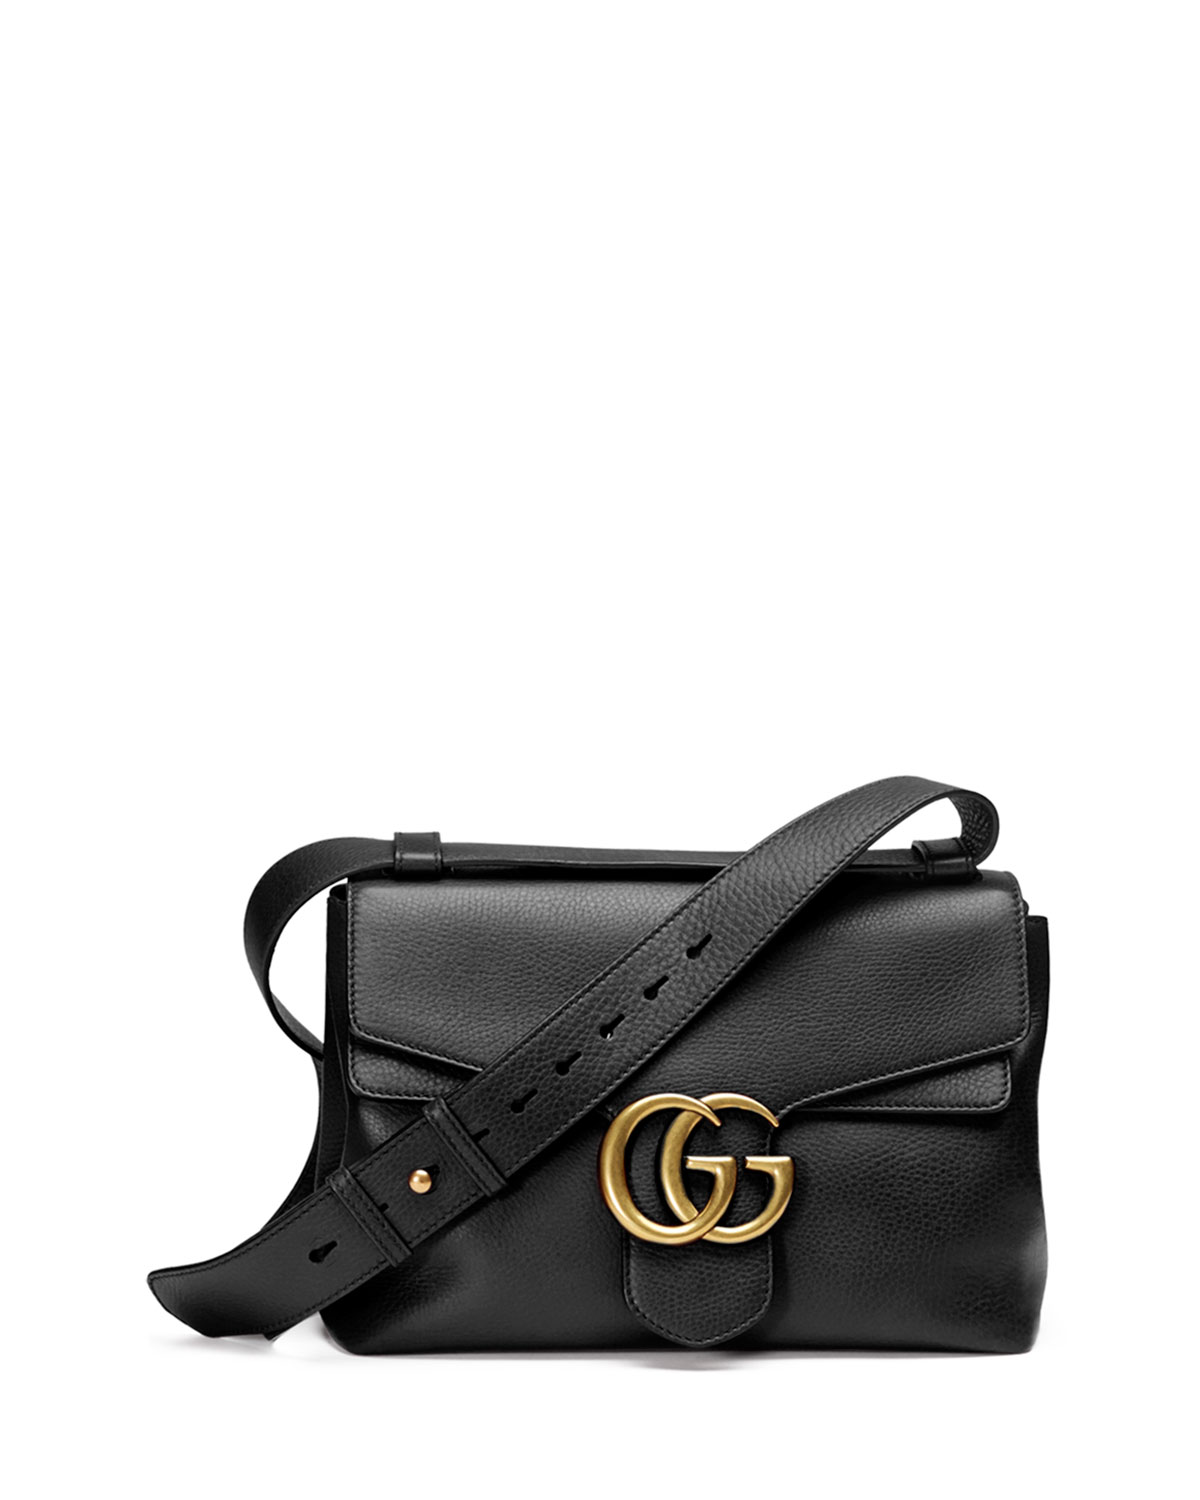 acc1c85c9 Gucci GG Marmont Medium Leather Shoulder Bag, Black | Neiman Marcus